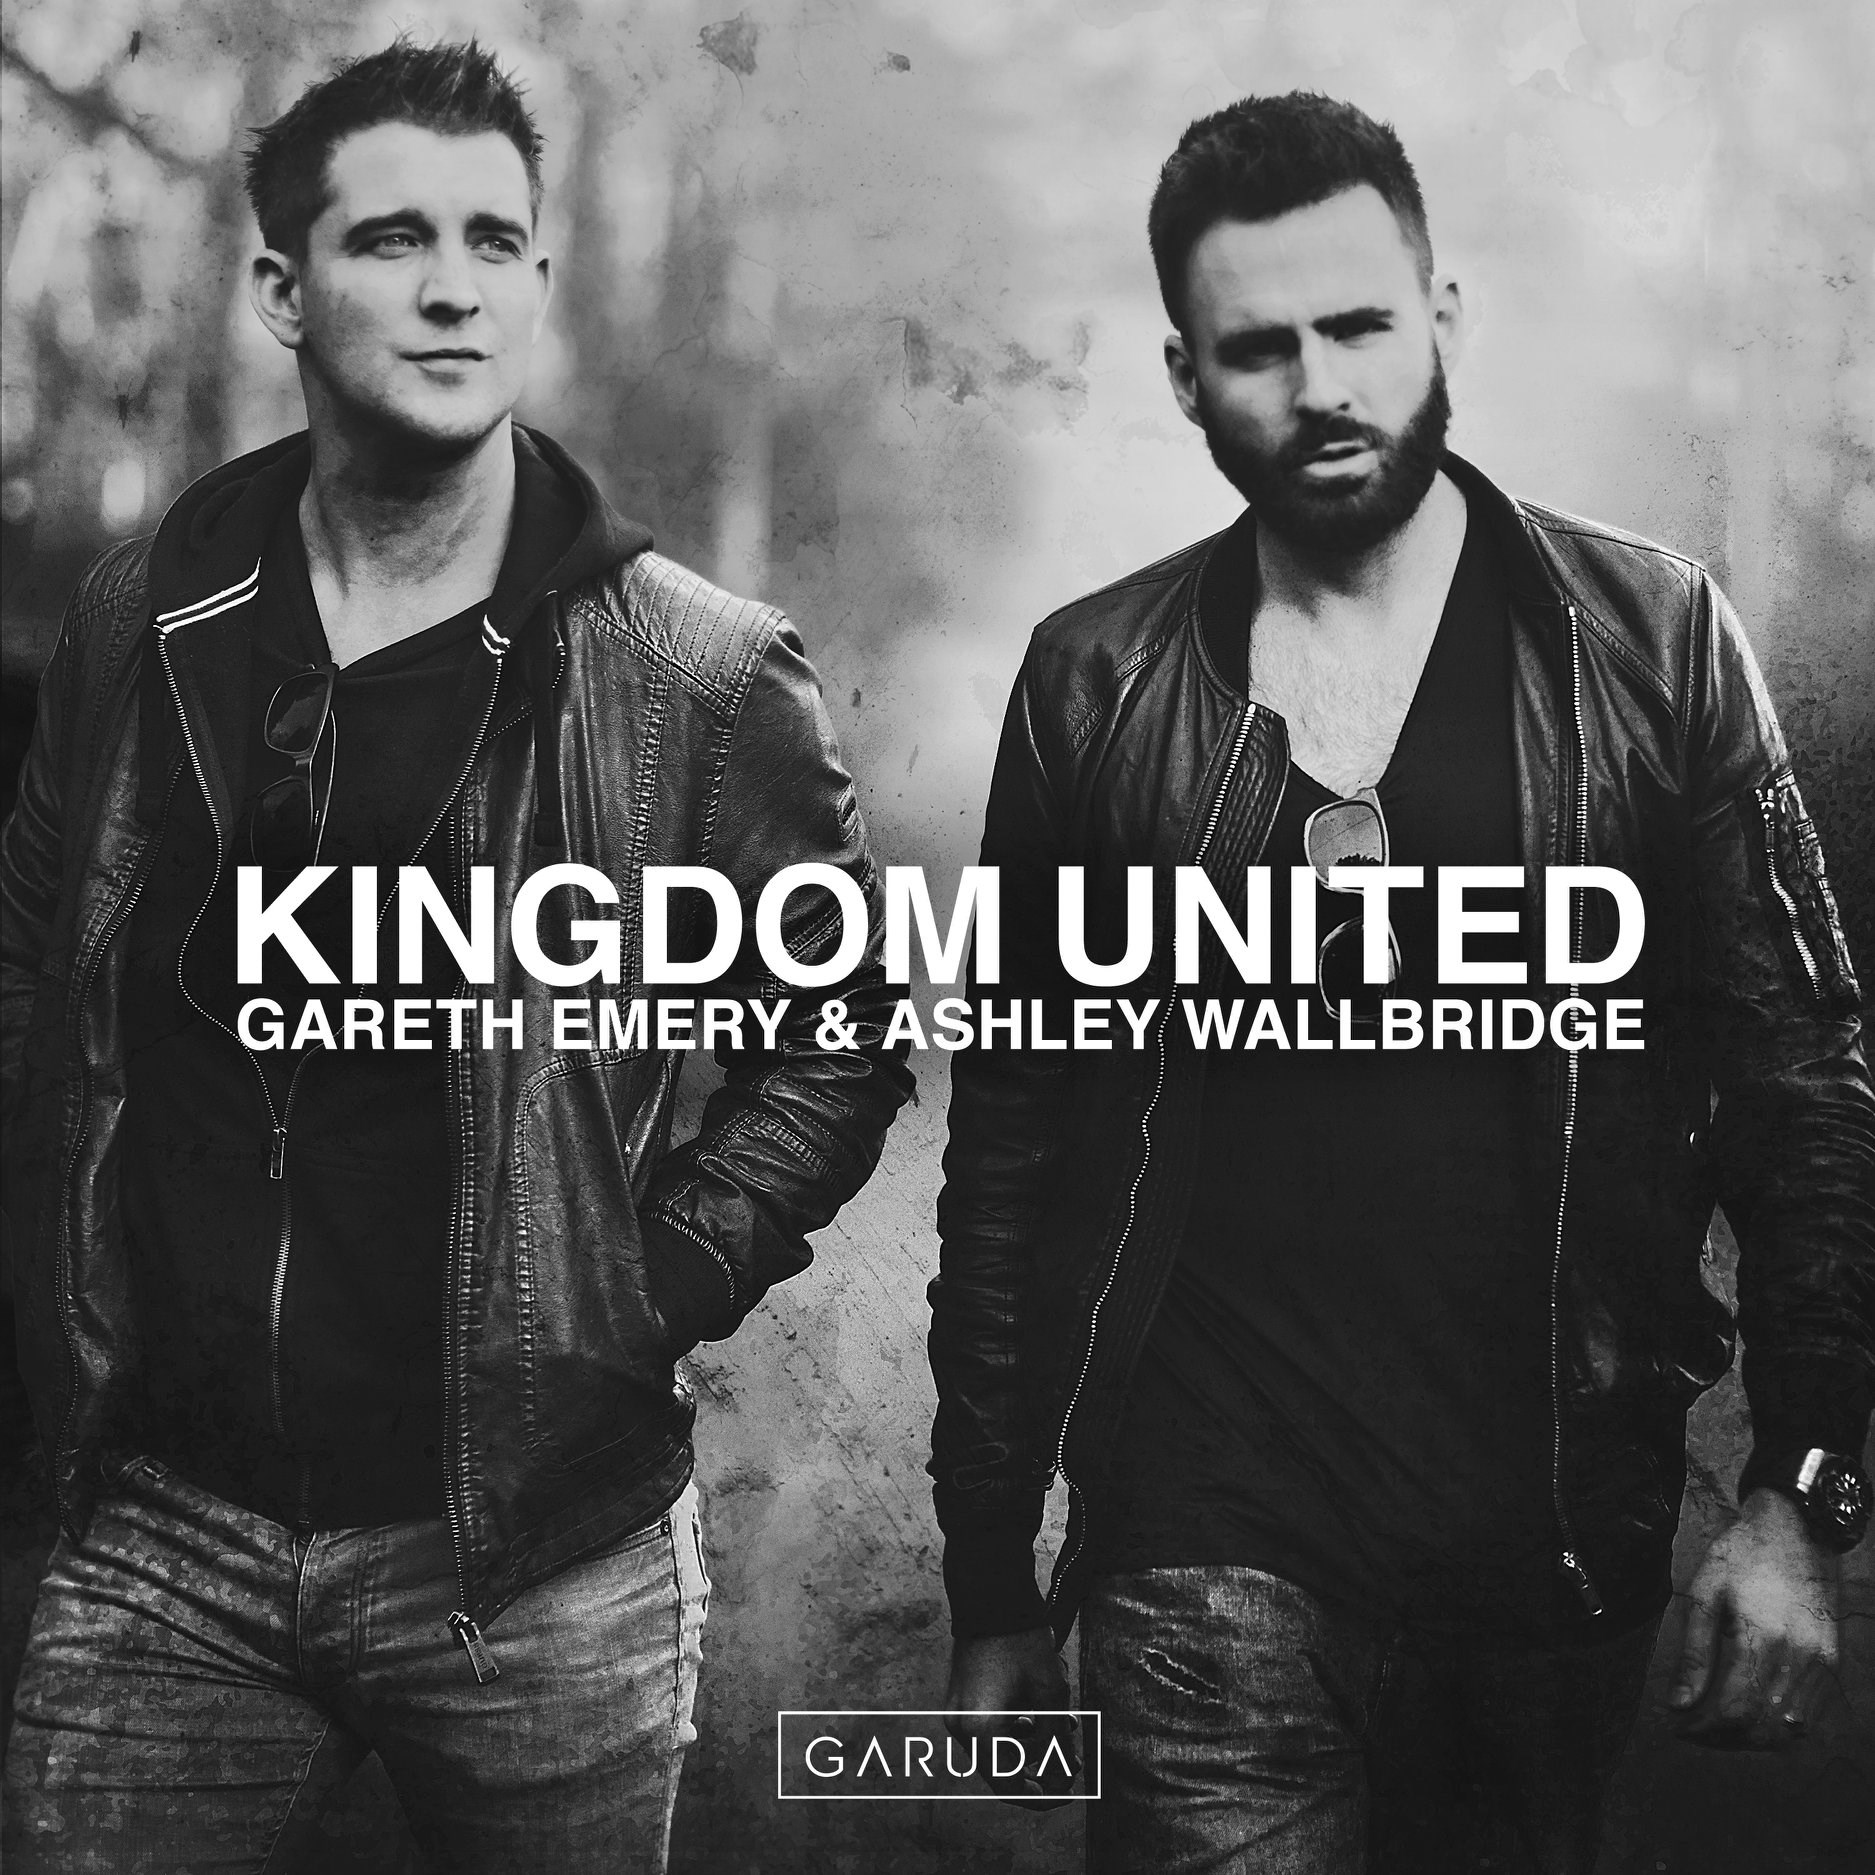 Gareth Emery and Ashley Wallbridge Kingdom United